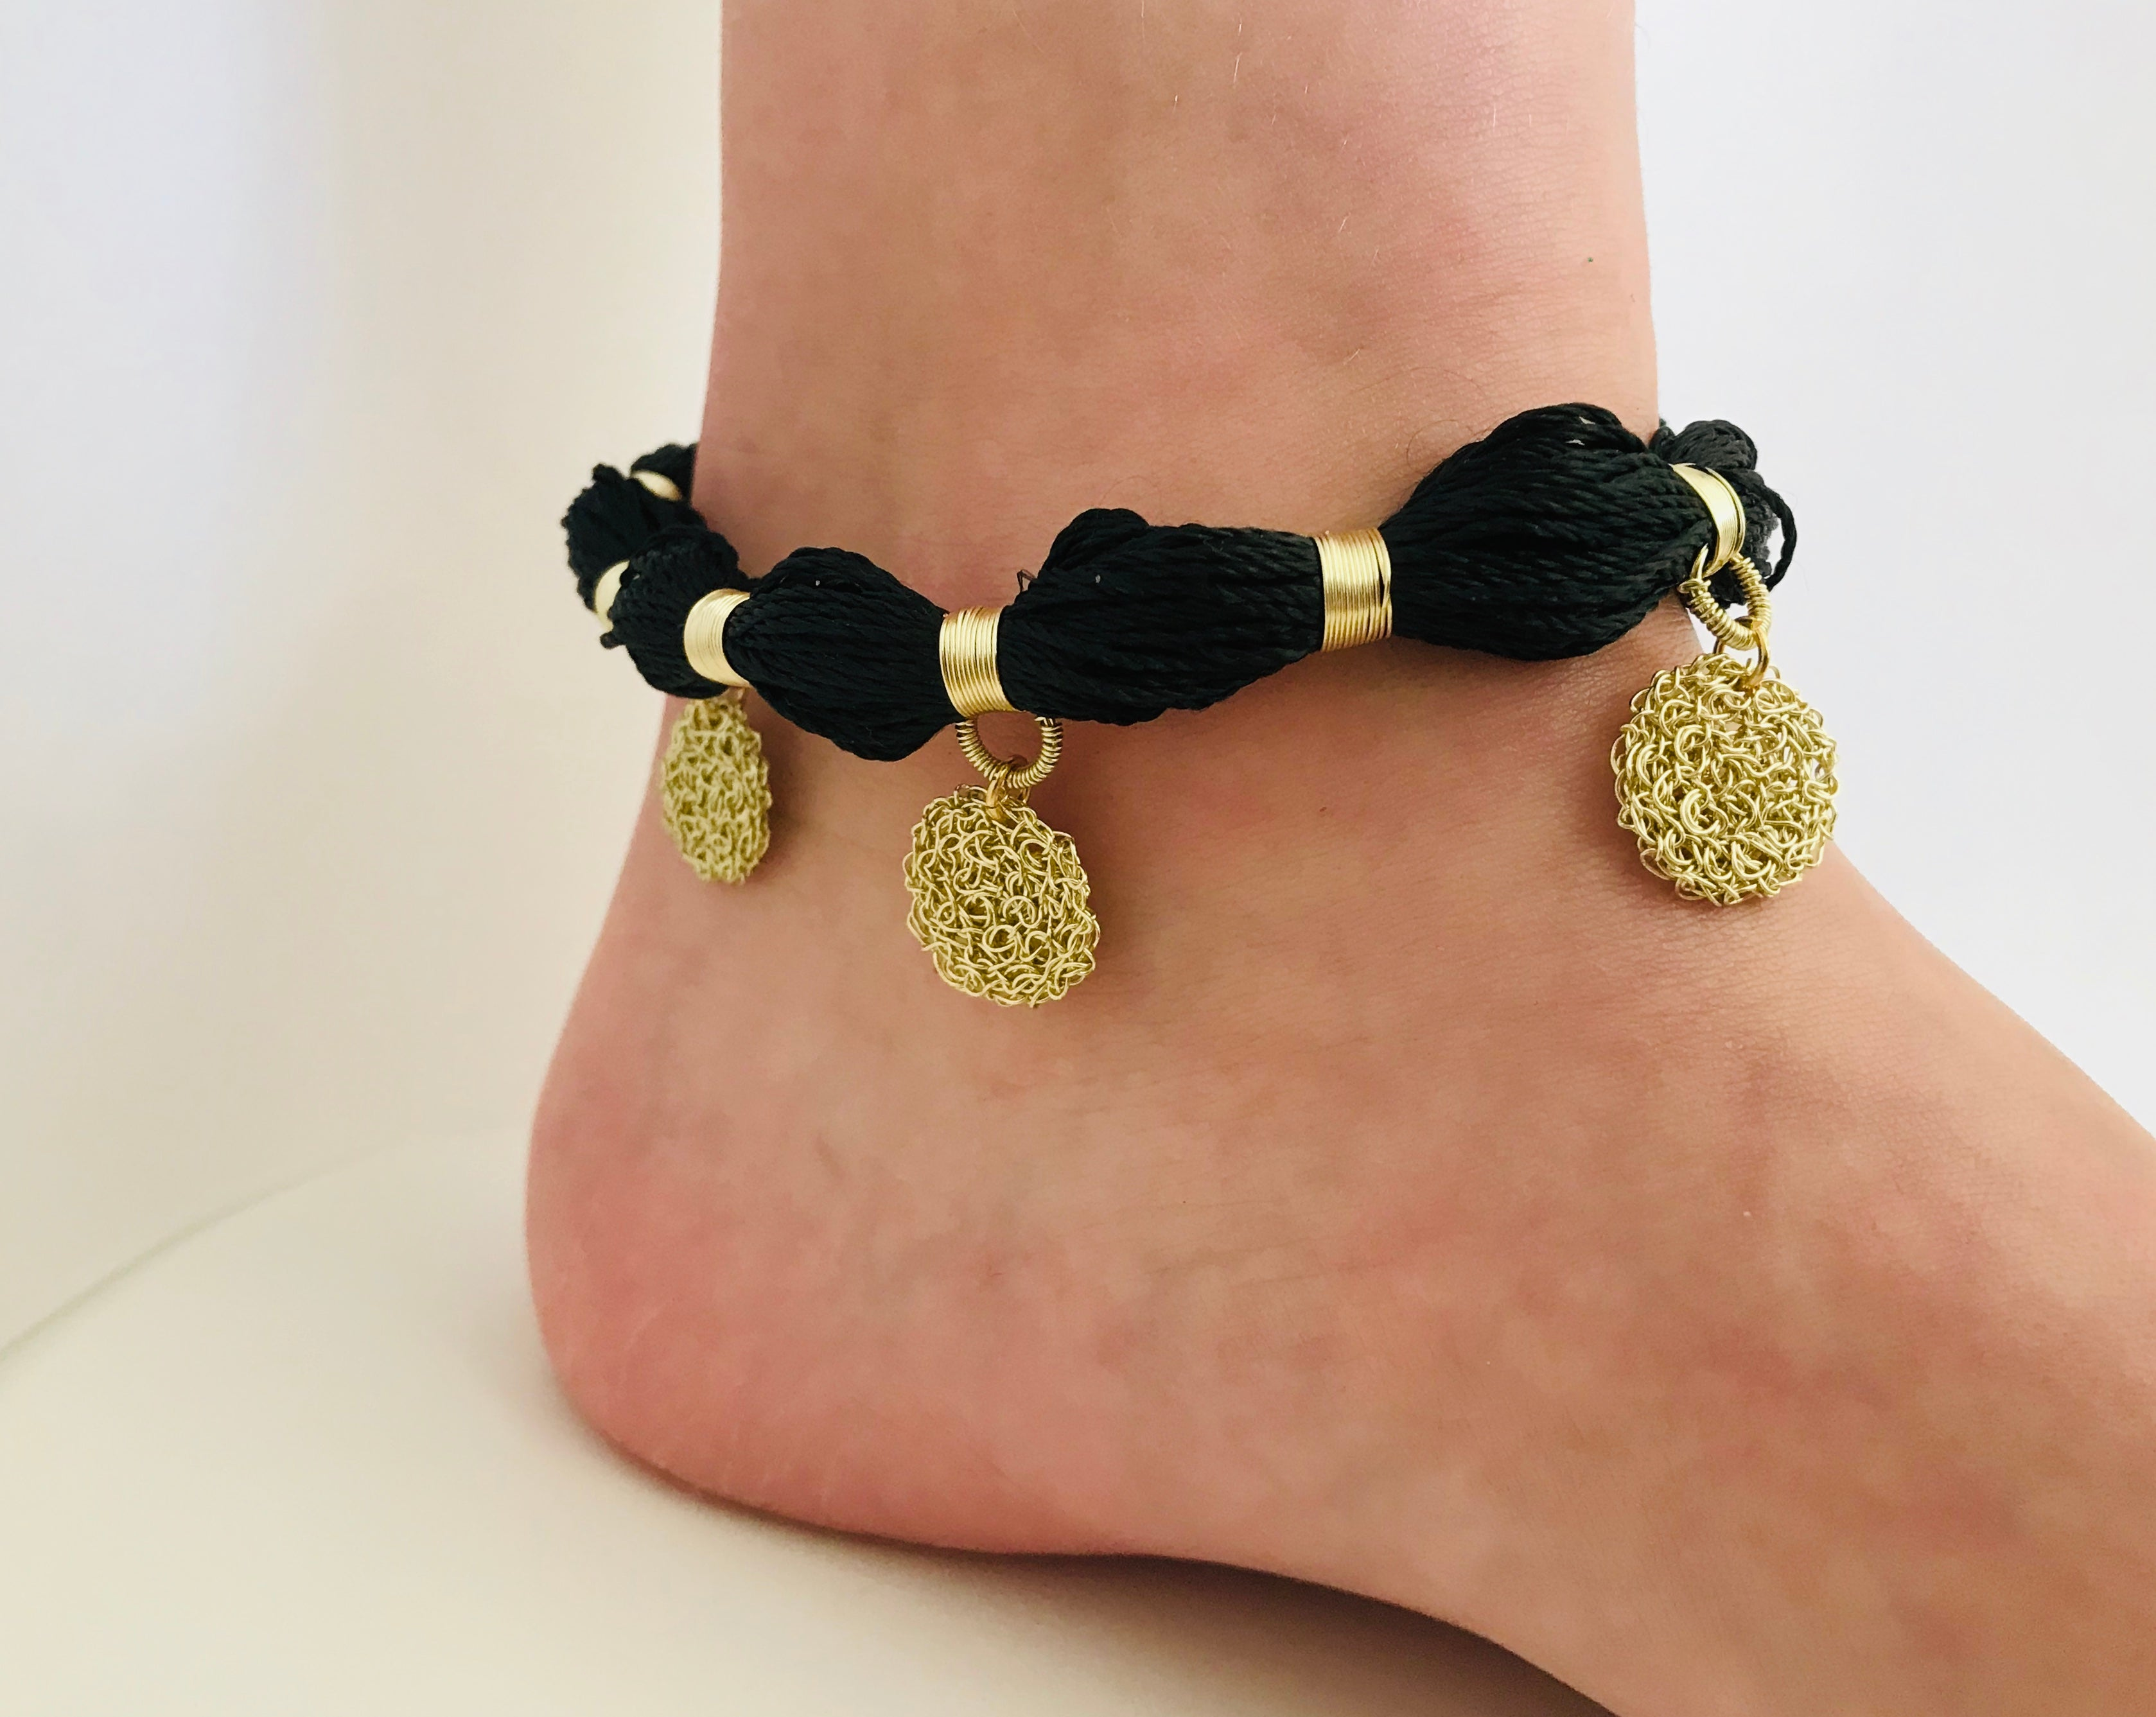 Notte Anklet, Venice Collection